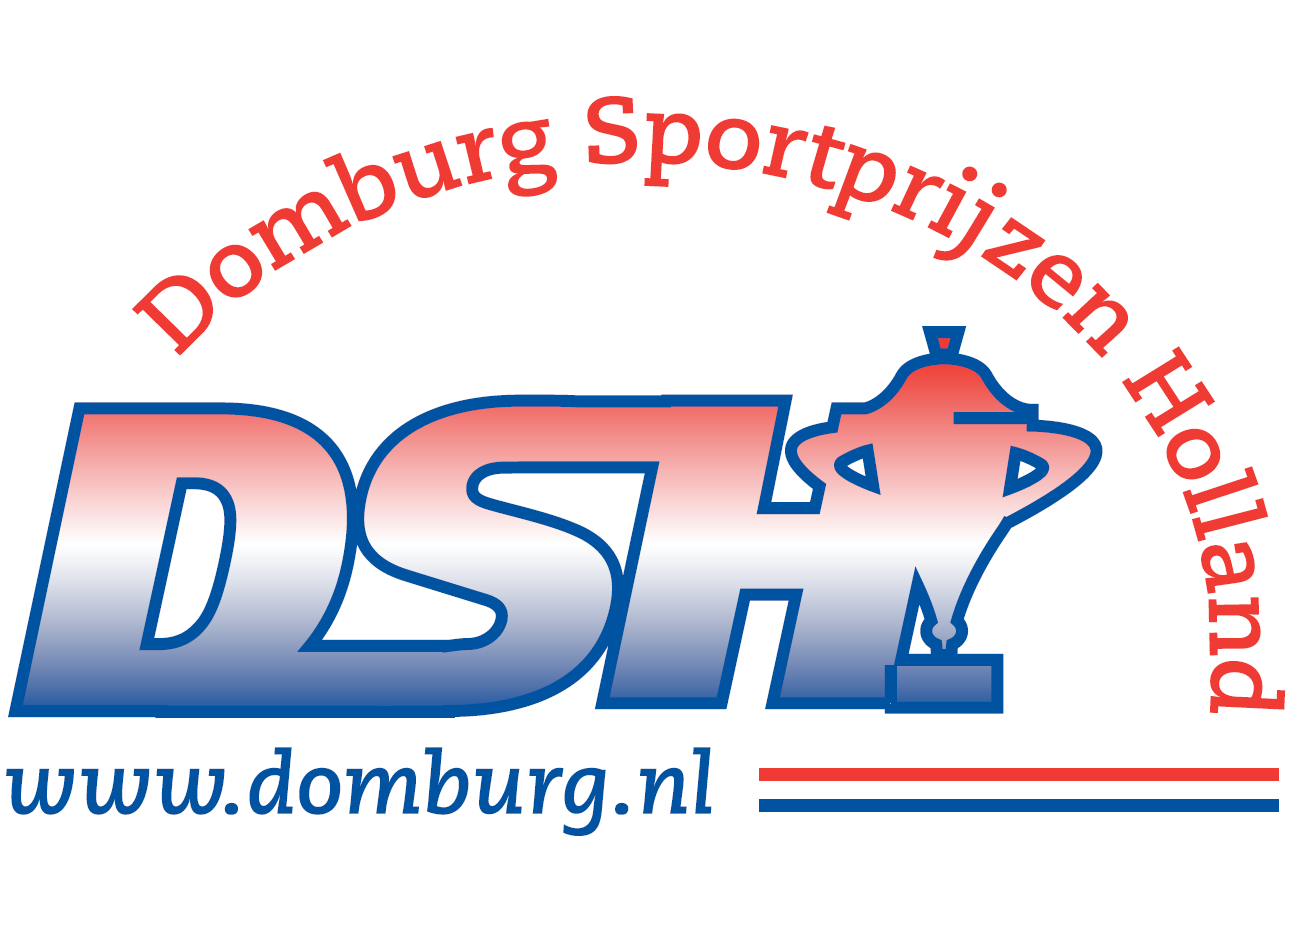 Domburg Sportprijzen Holland